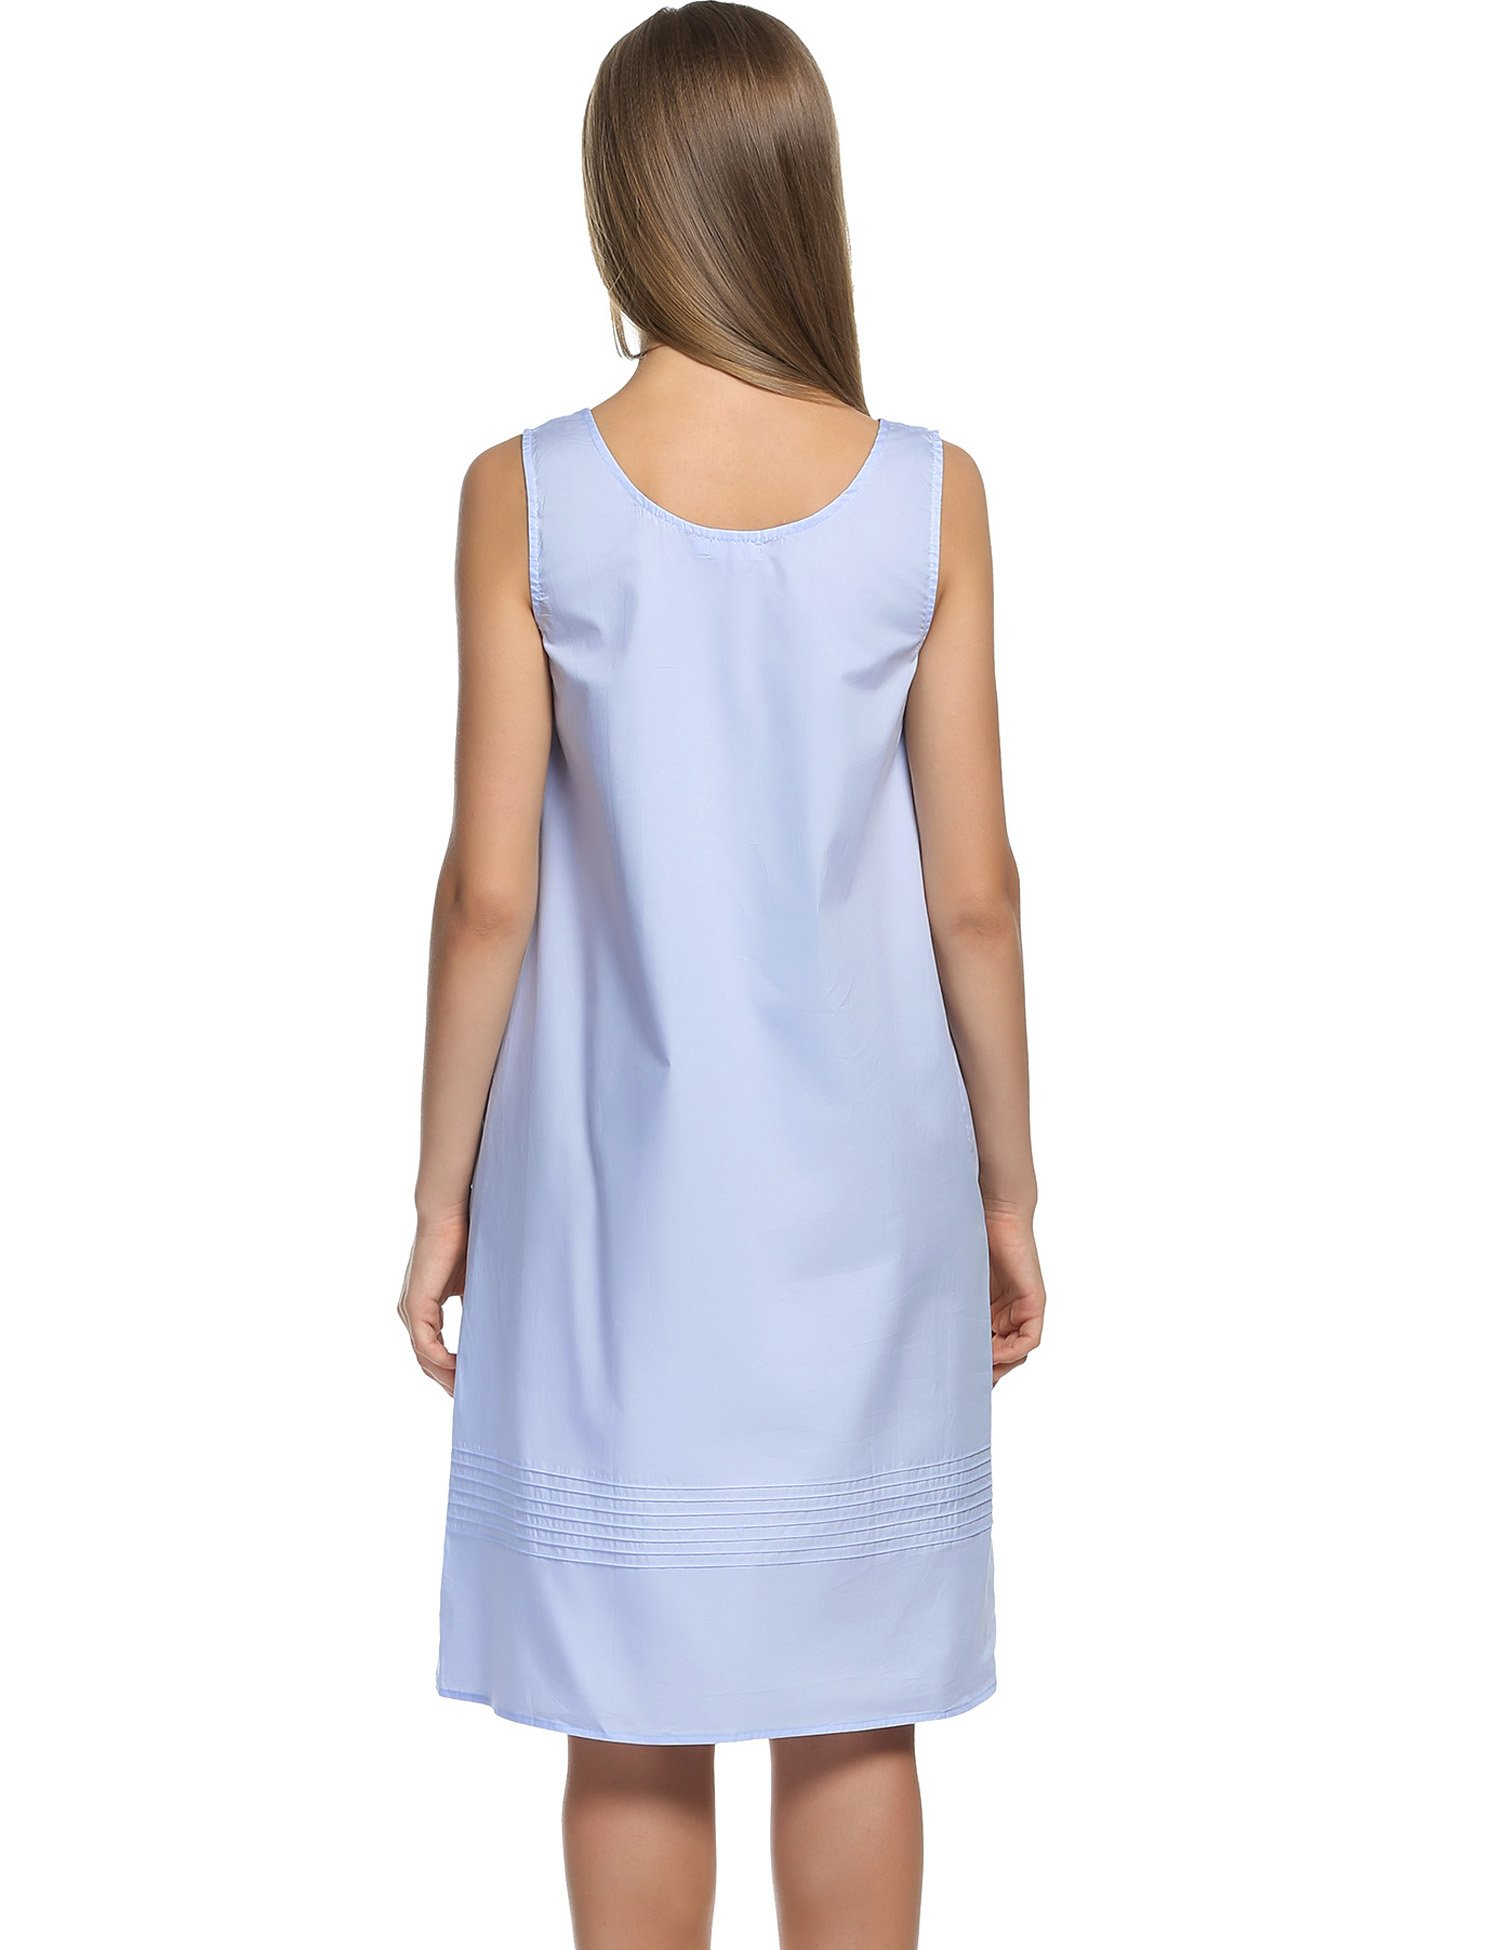 Hotouch Women's Plus-Size Sleep Shirt Lightweight Nightgowns Light Blue L by Hotouch (Image #5)